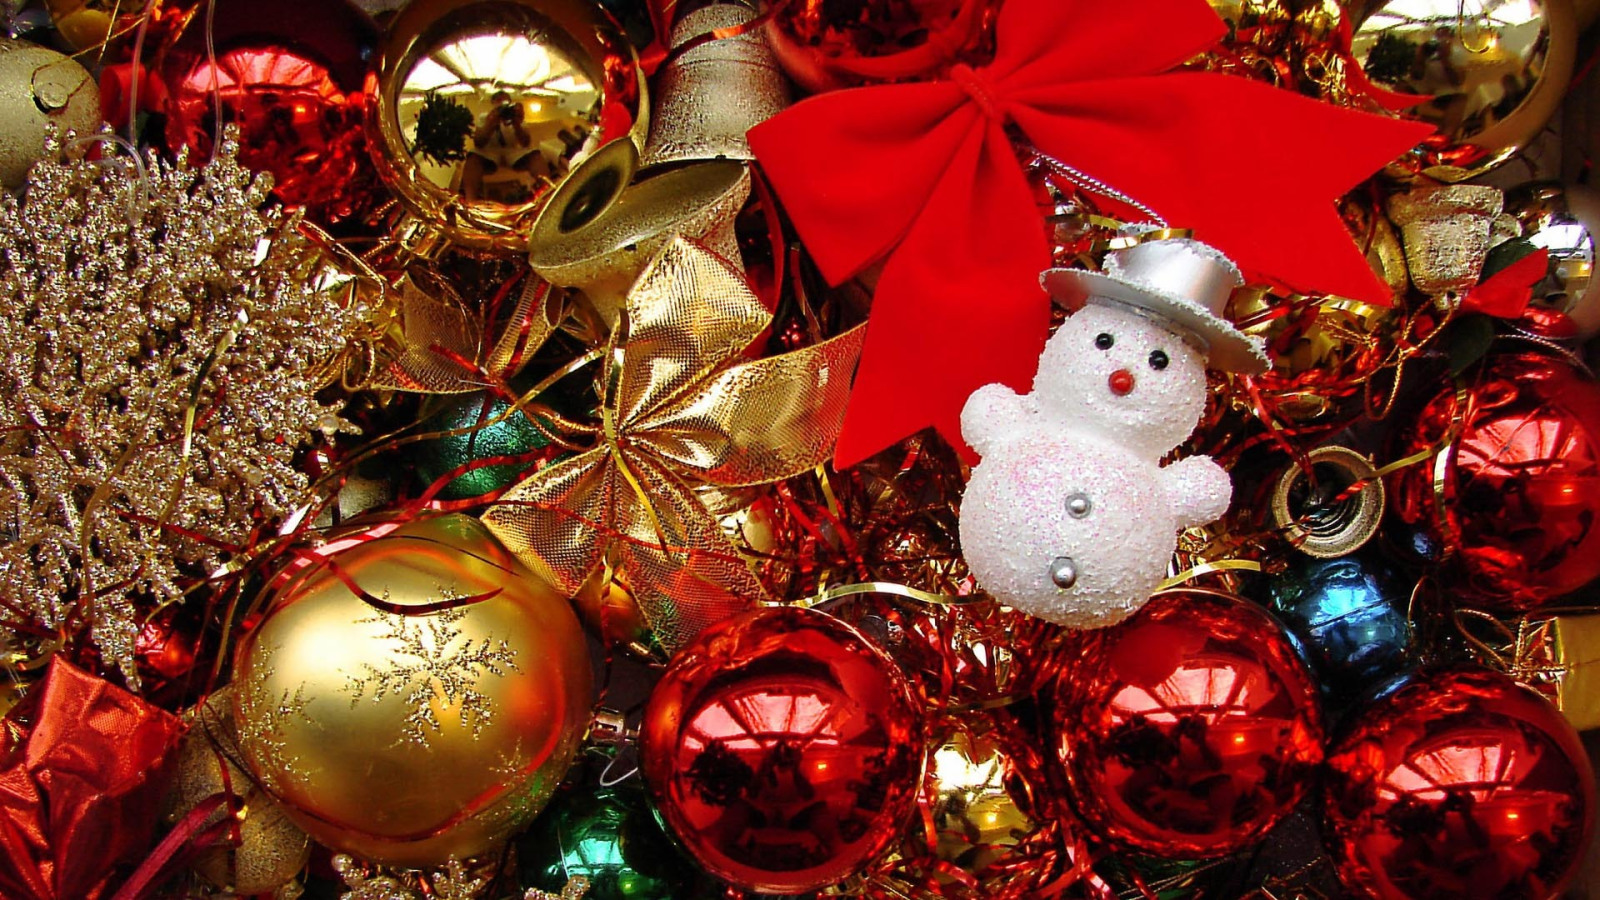 Christmas-Tree-s-1920x1080-wallpaper-wp3403906